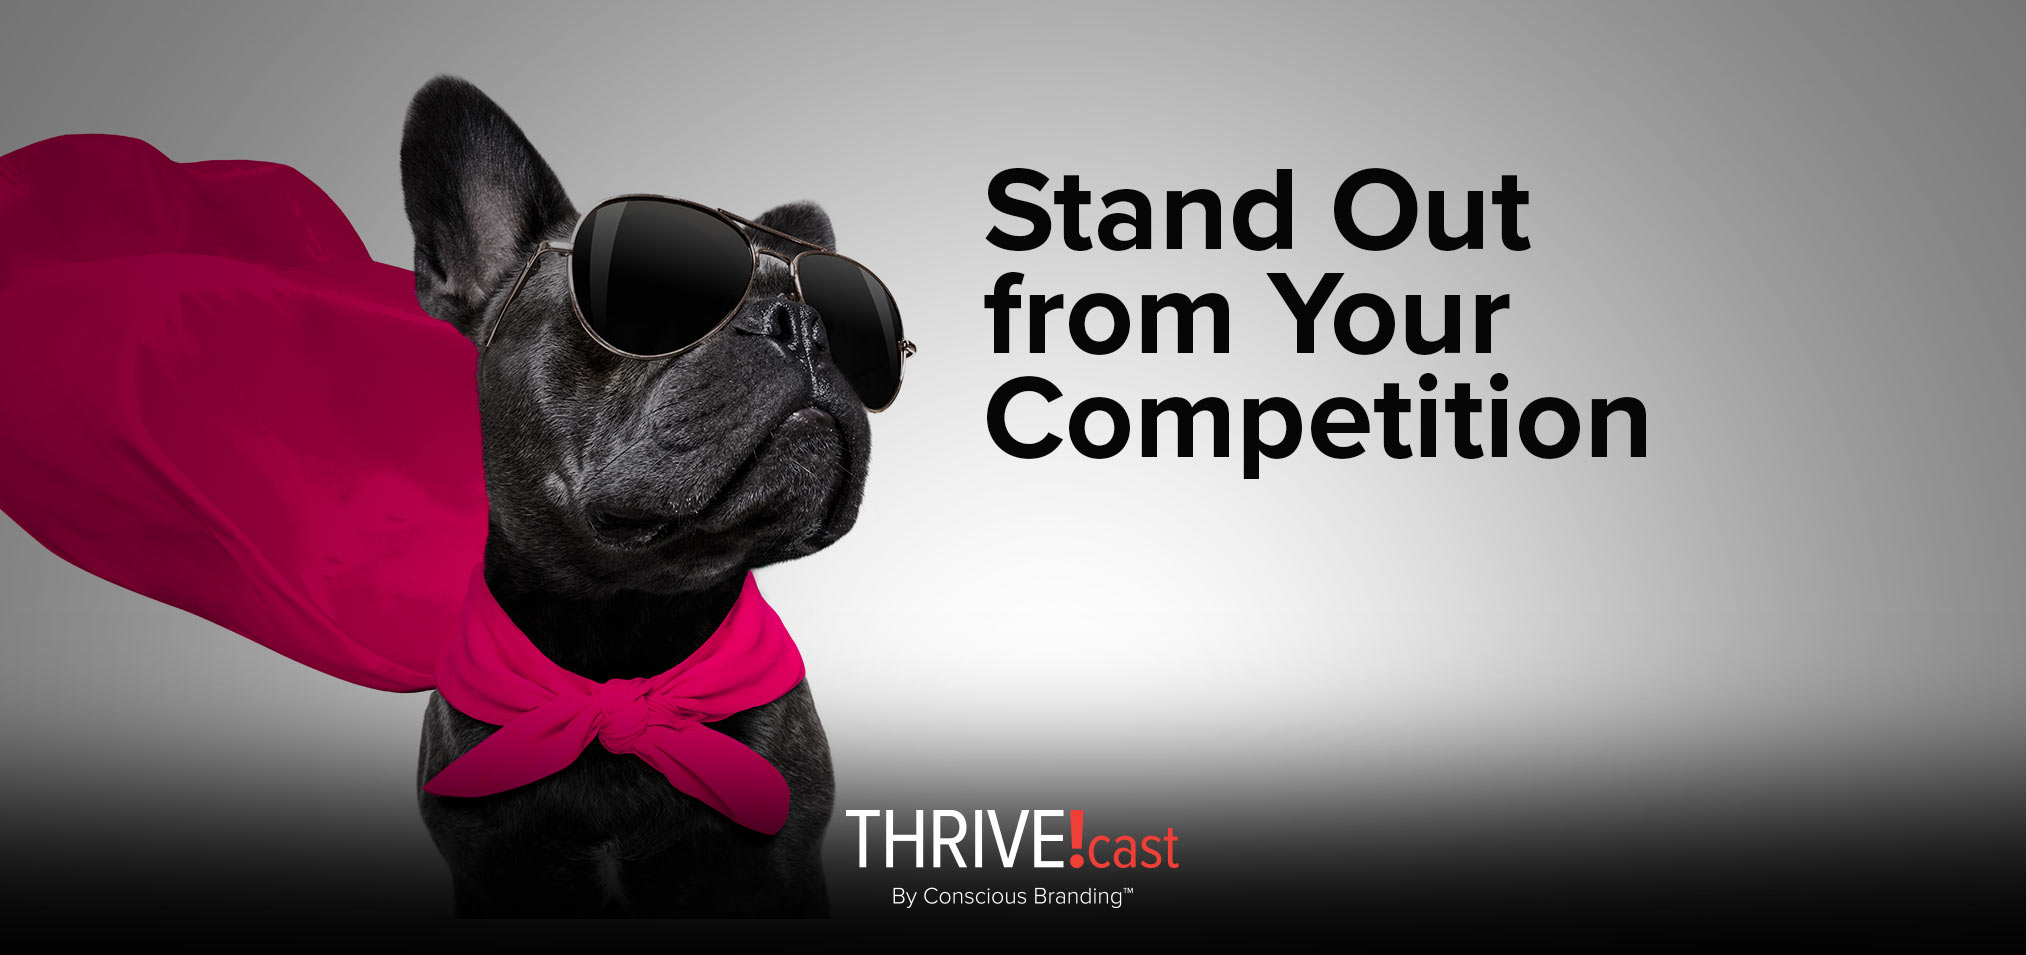 Thrivecast - Stand Out from Your Competition